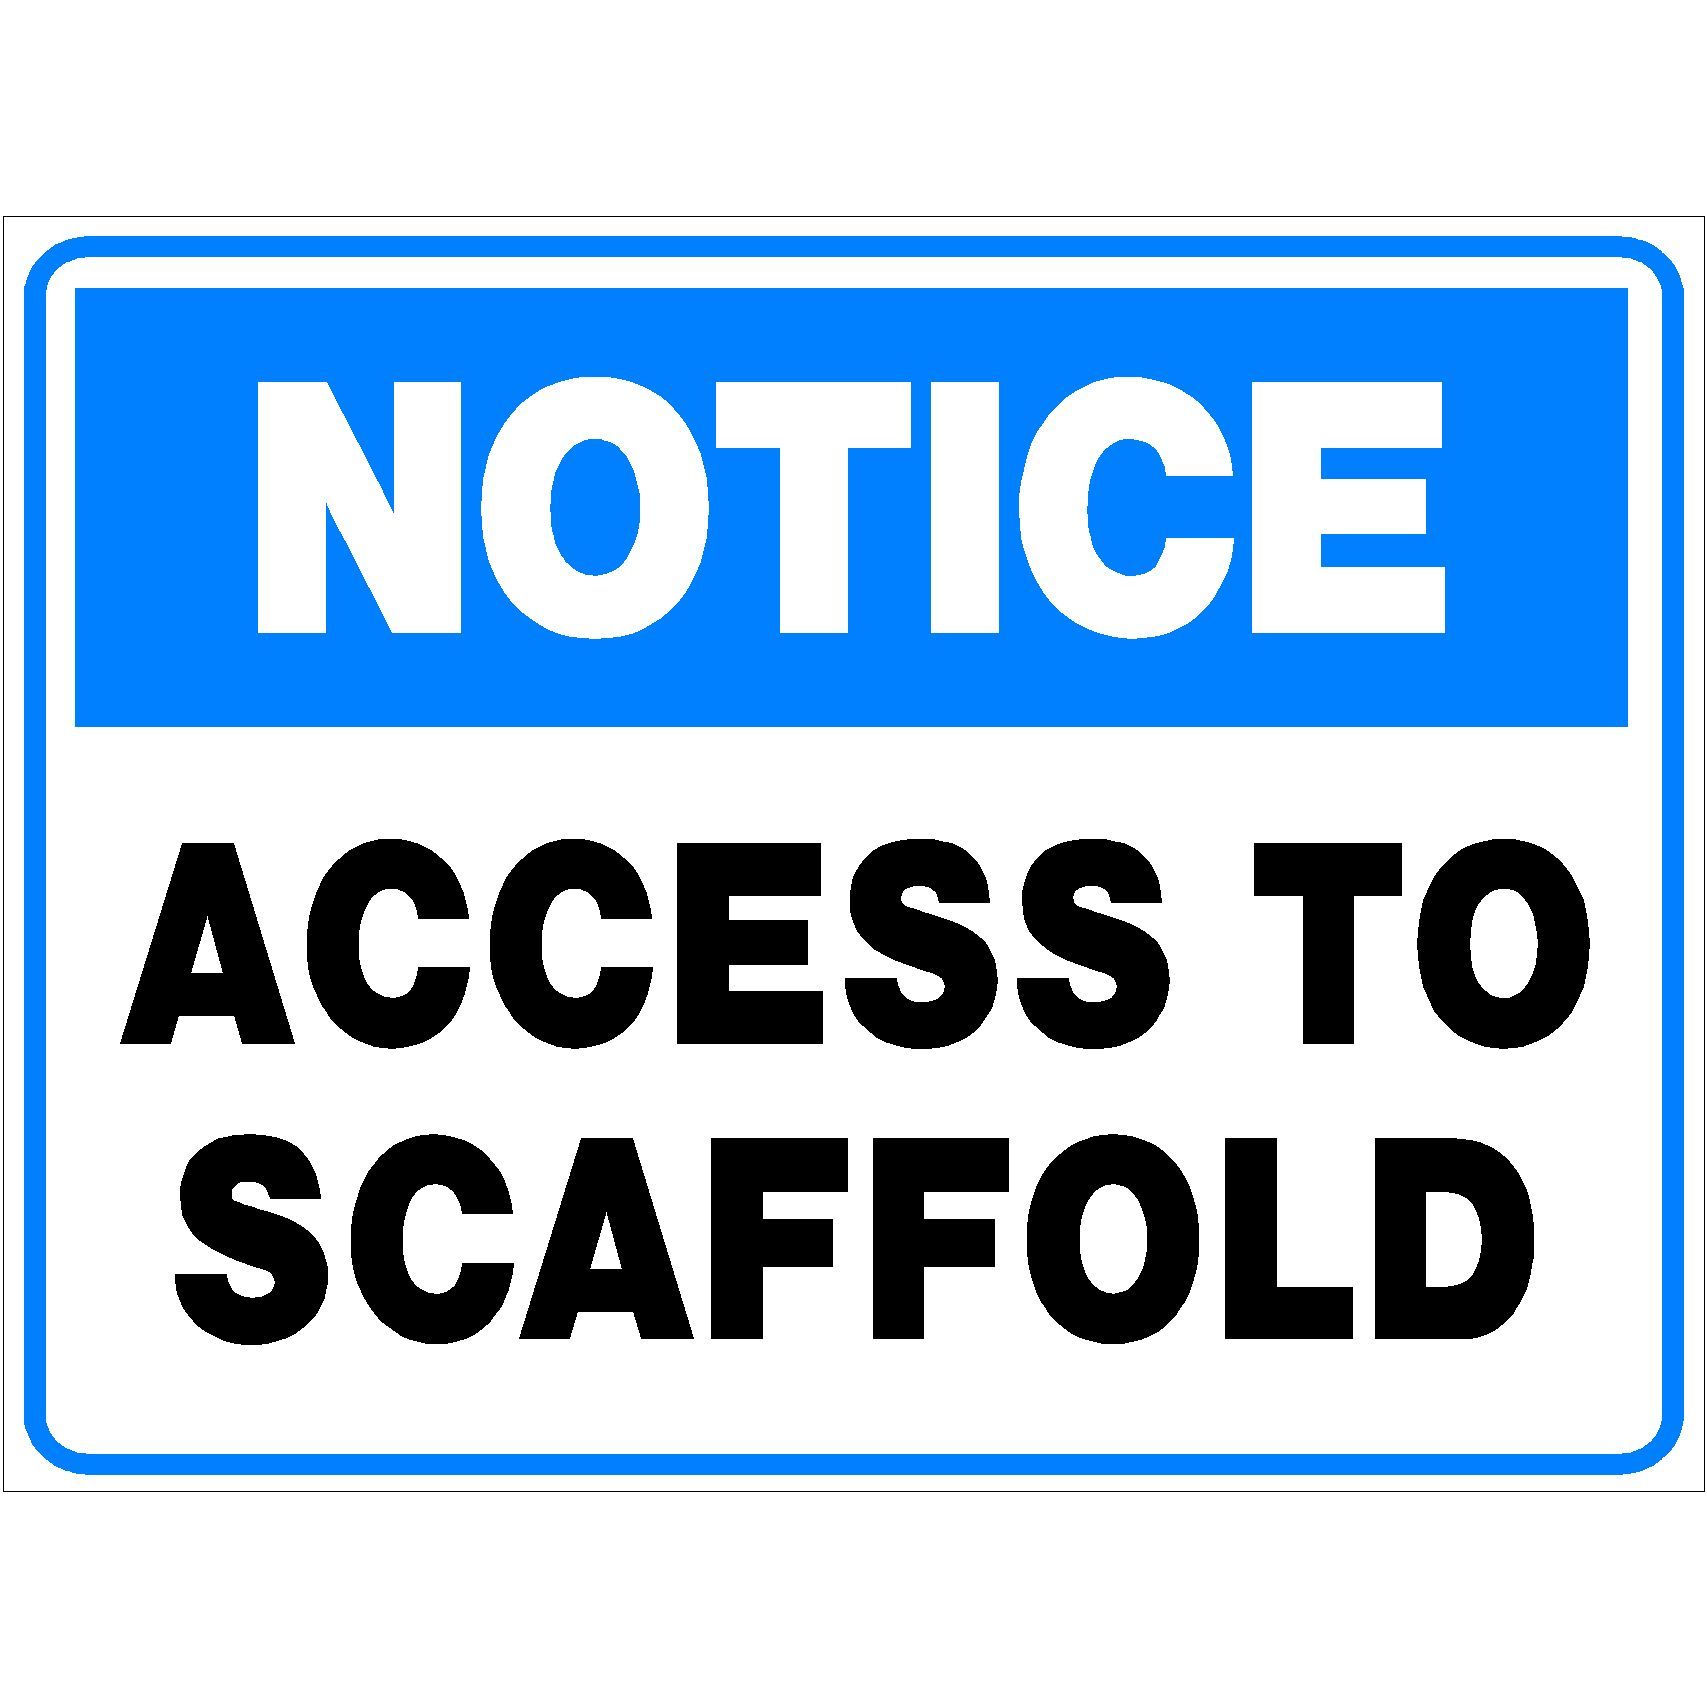 Notice Access To Scaffold